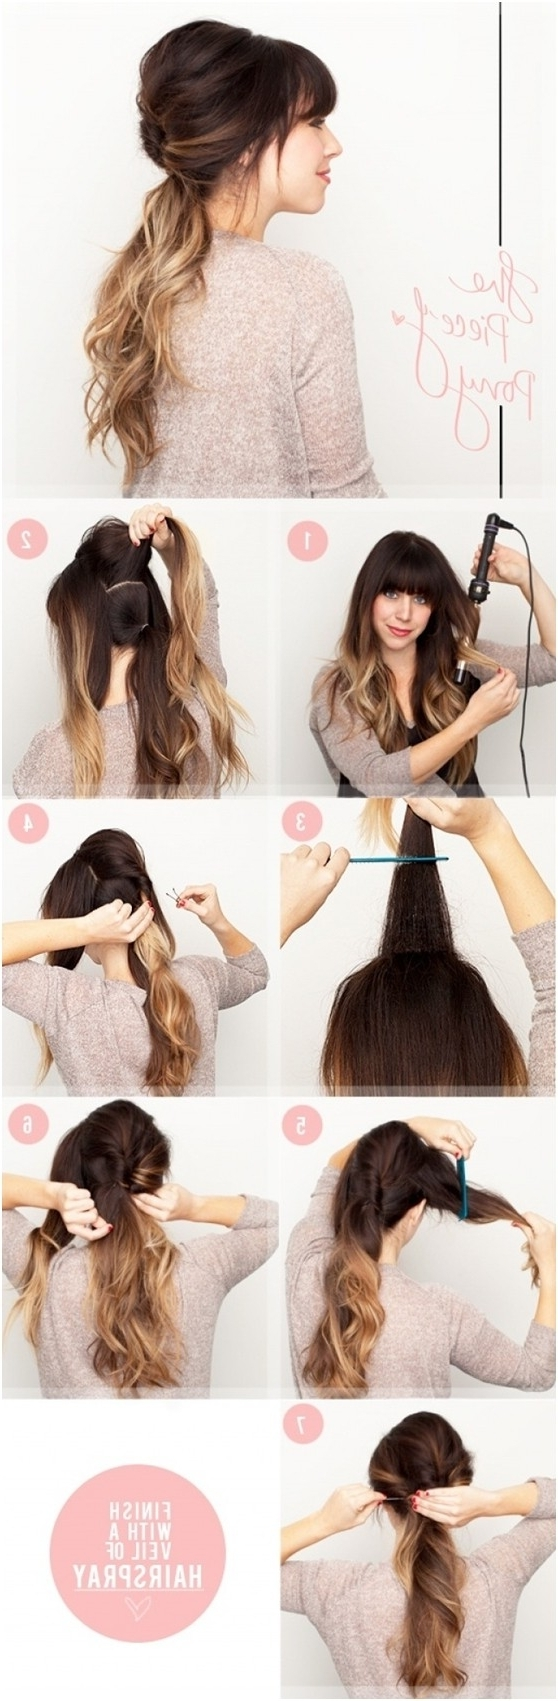 15 Cute & Easy Ponytails – Sure Champ Pertaining To Well Known Pretty Messy Pony Hairstyles With Braided Section (View 8 of 20)